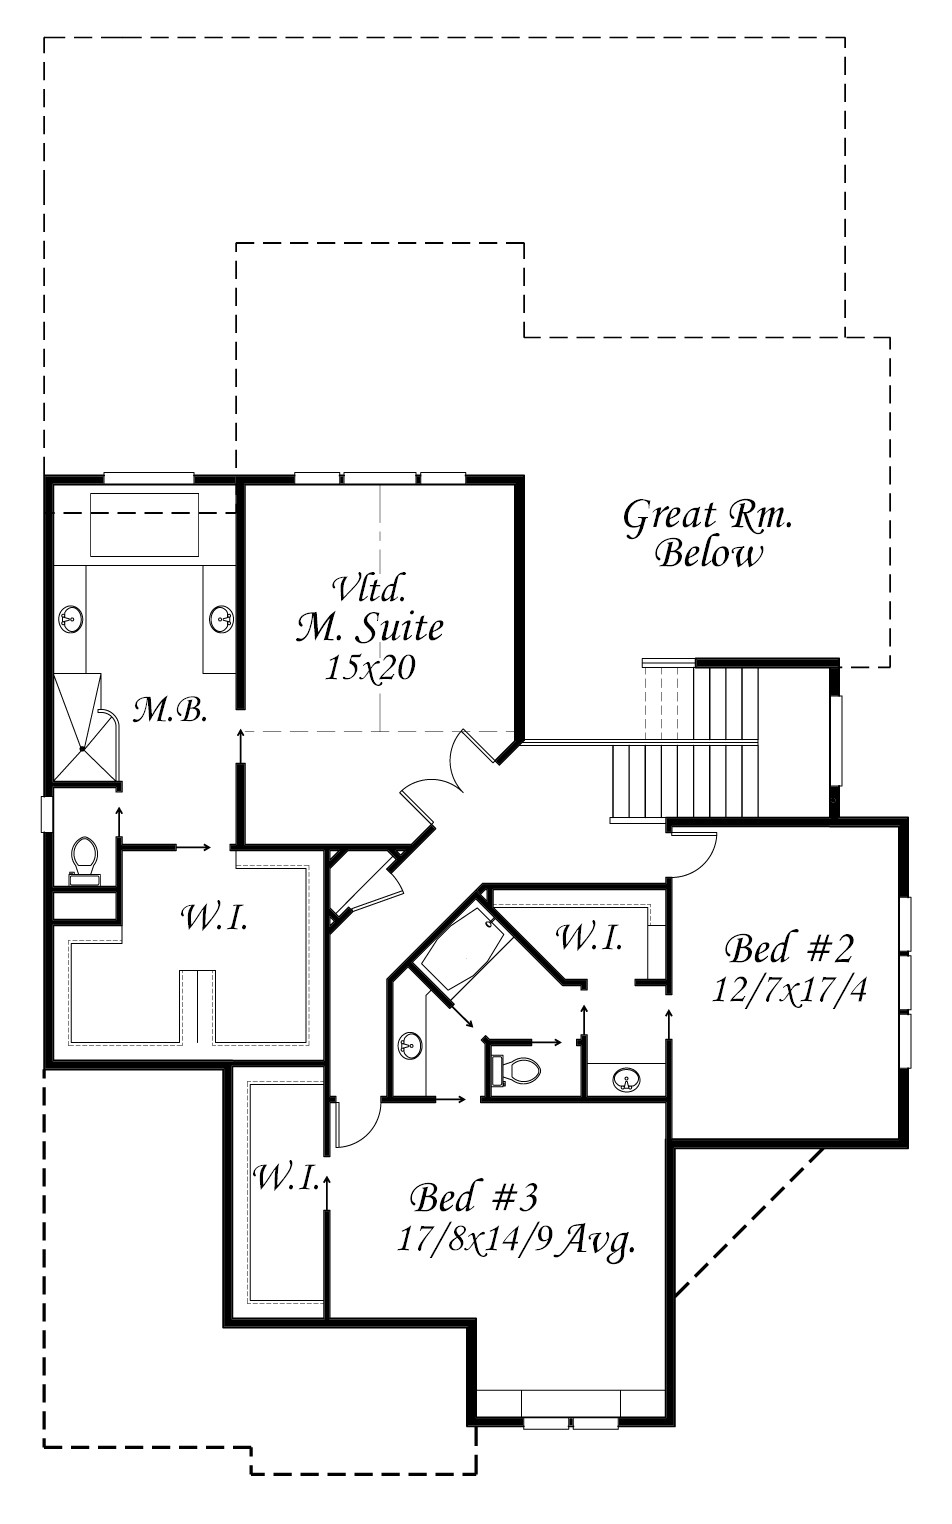 Smith rock house plan old world european style house plans for Old world style house plans